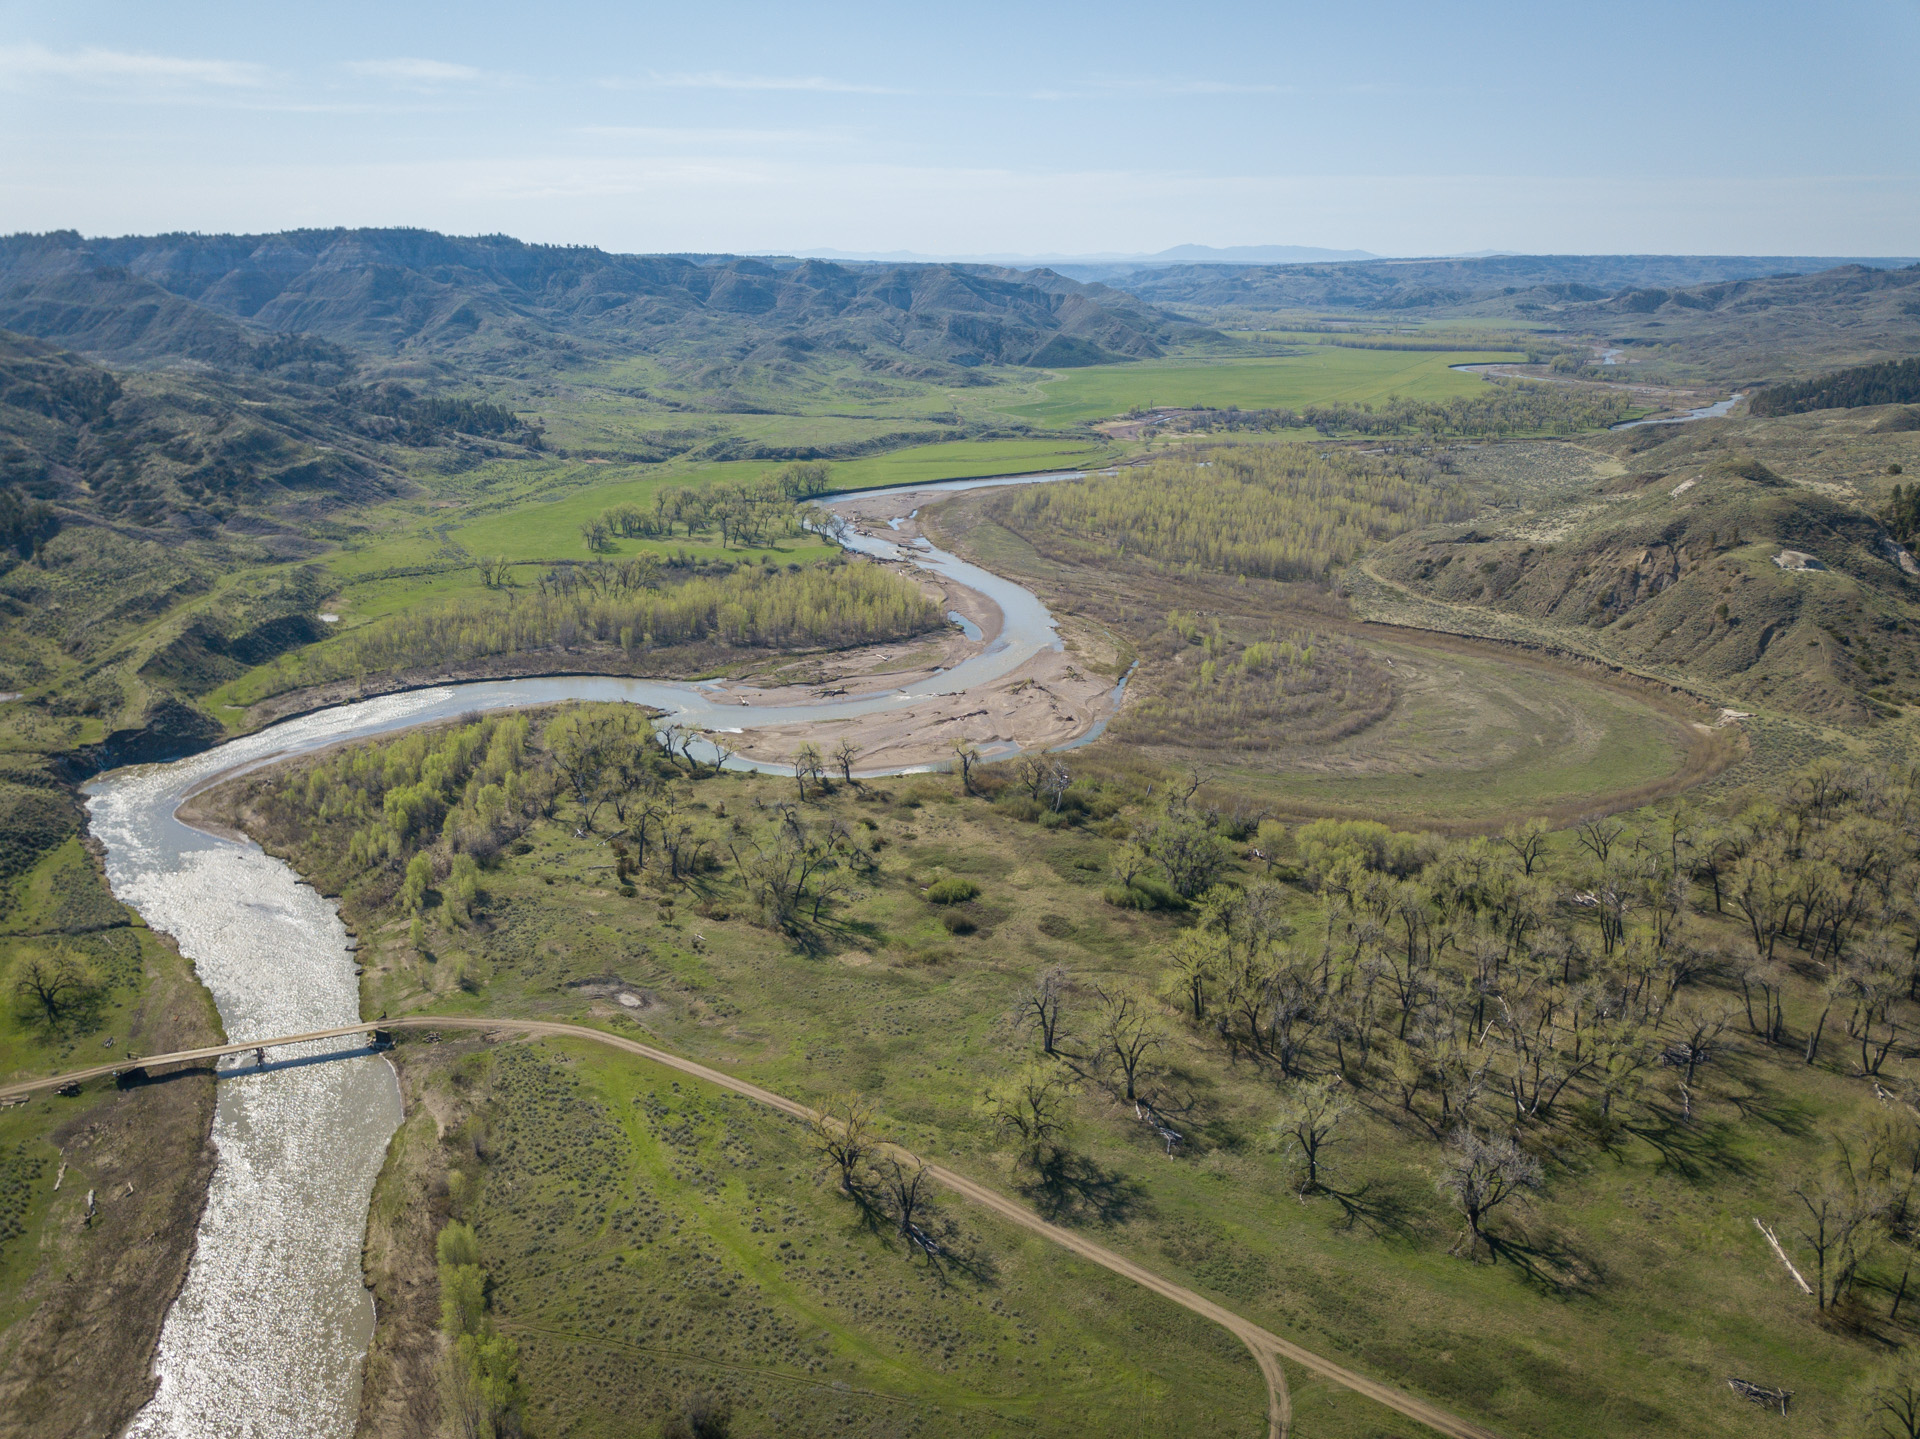 aerial view of Judith River and American Prarie Reserve